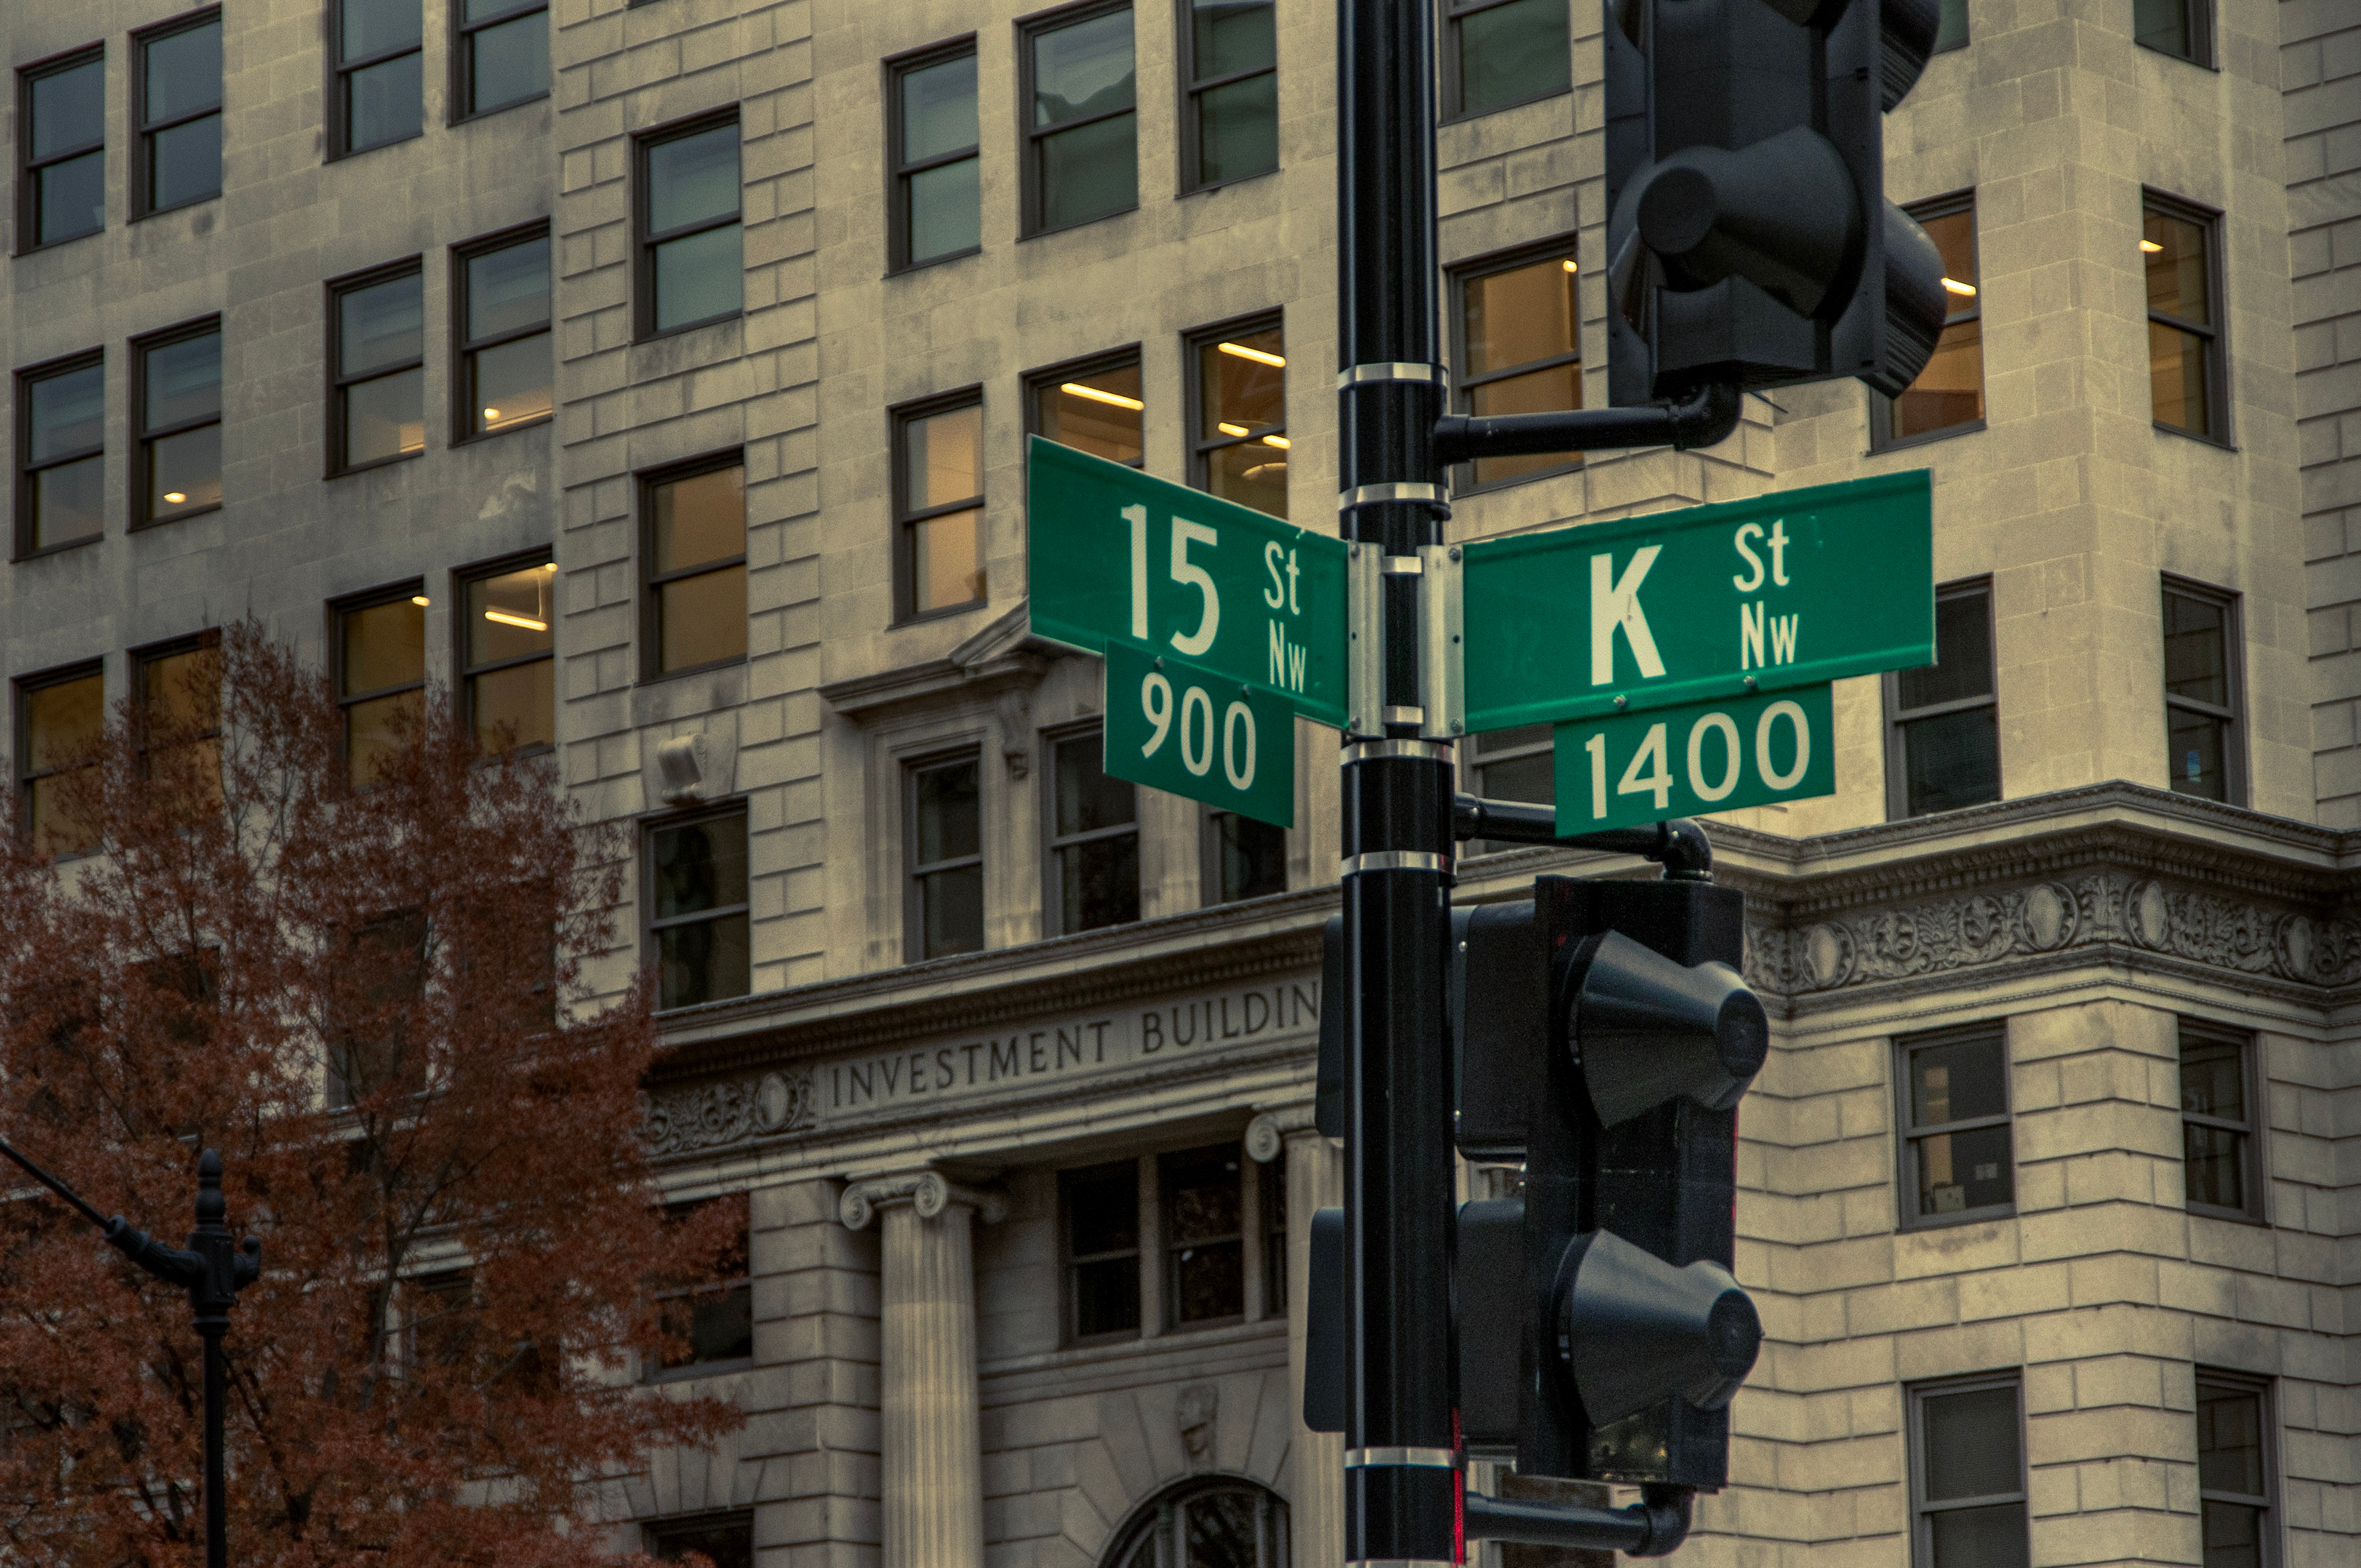 K Street has become synonymous with lobbying. Shutterstock image via PhilipR